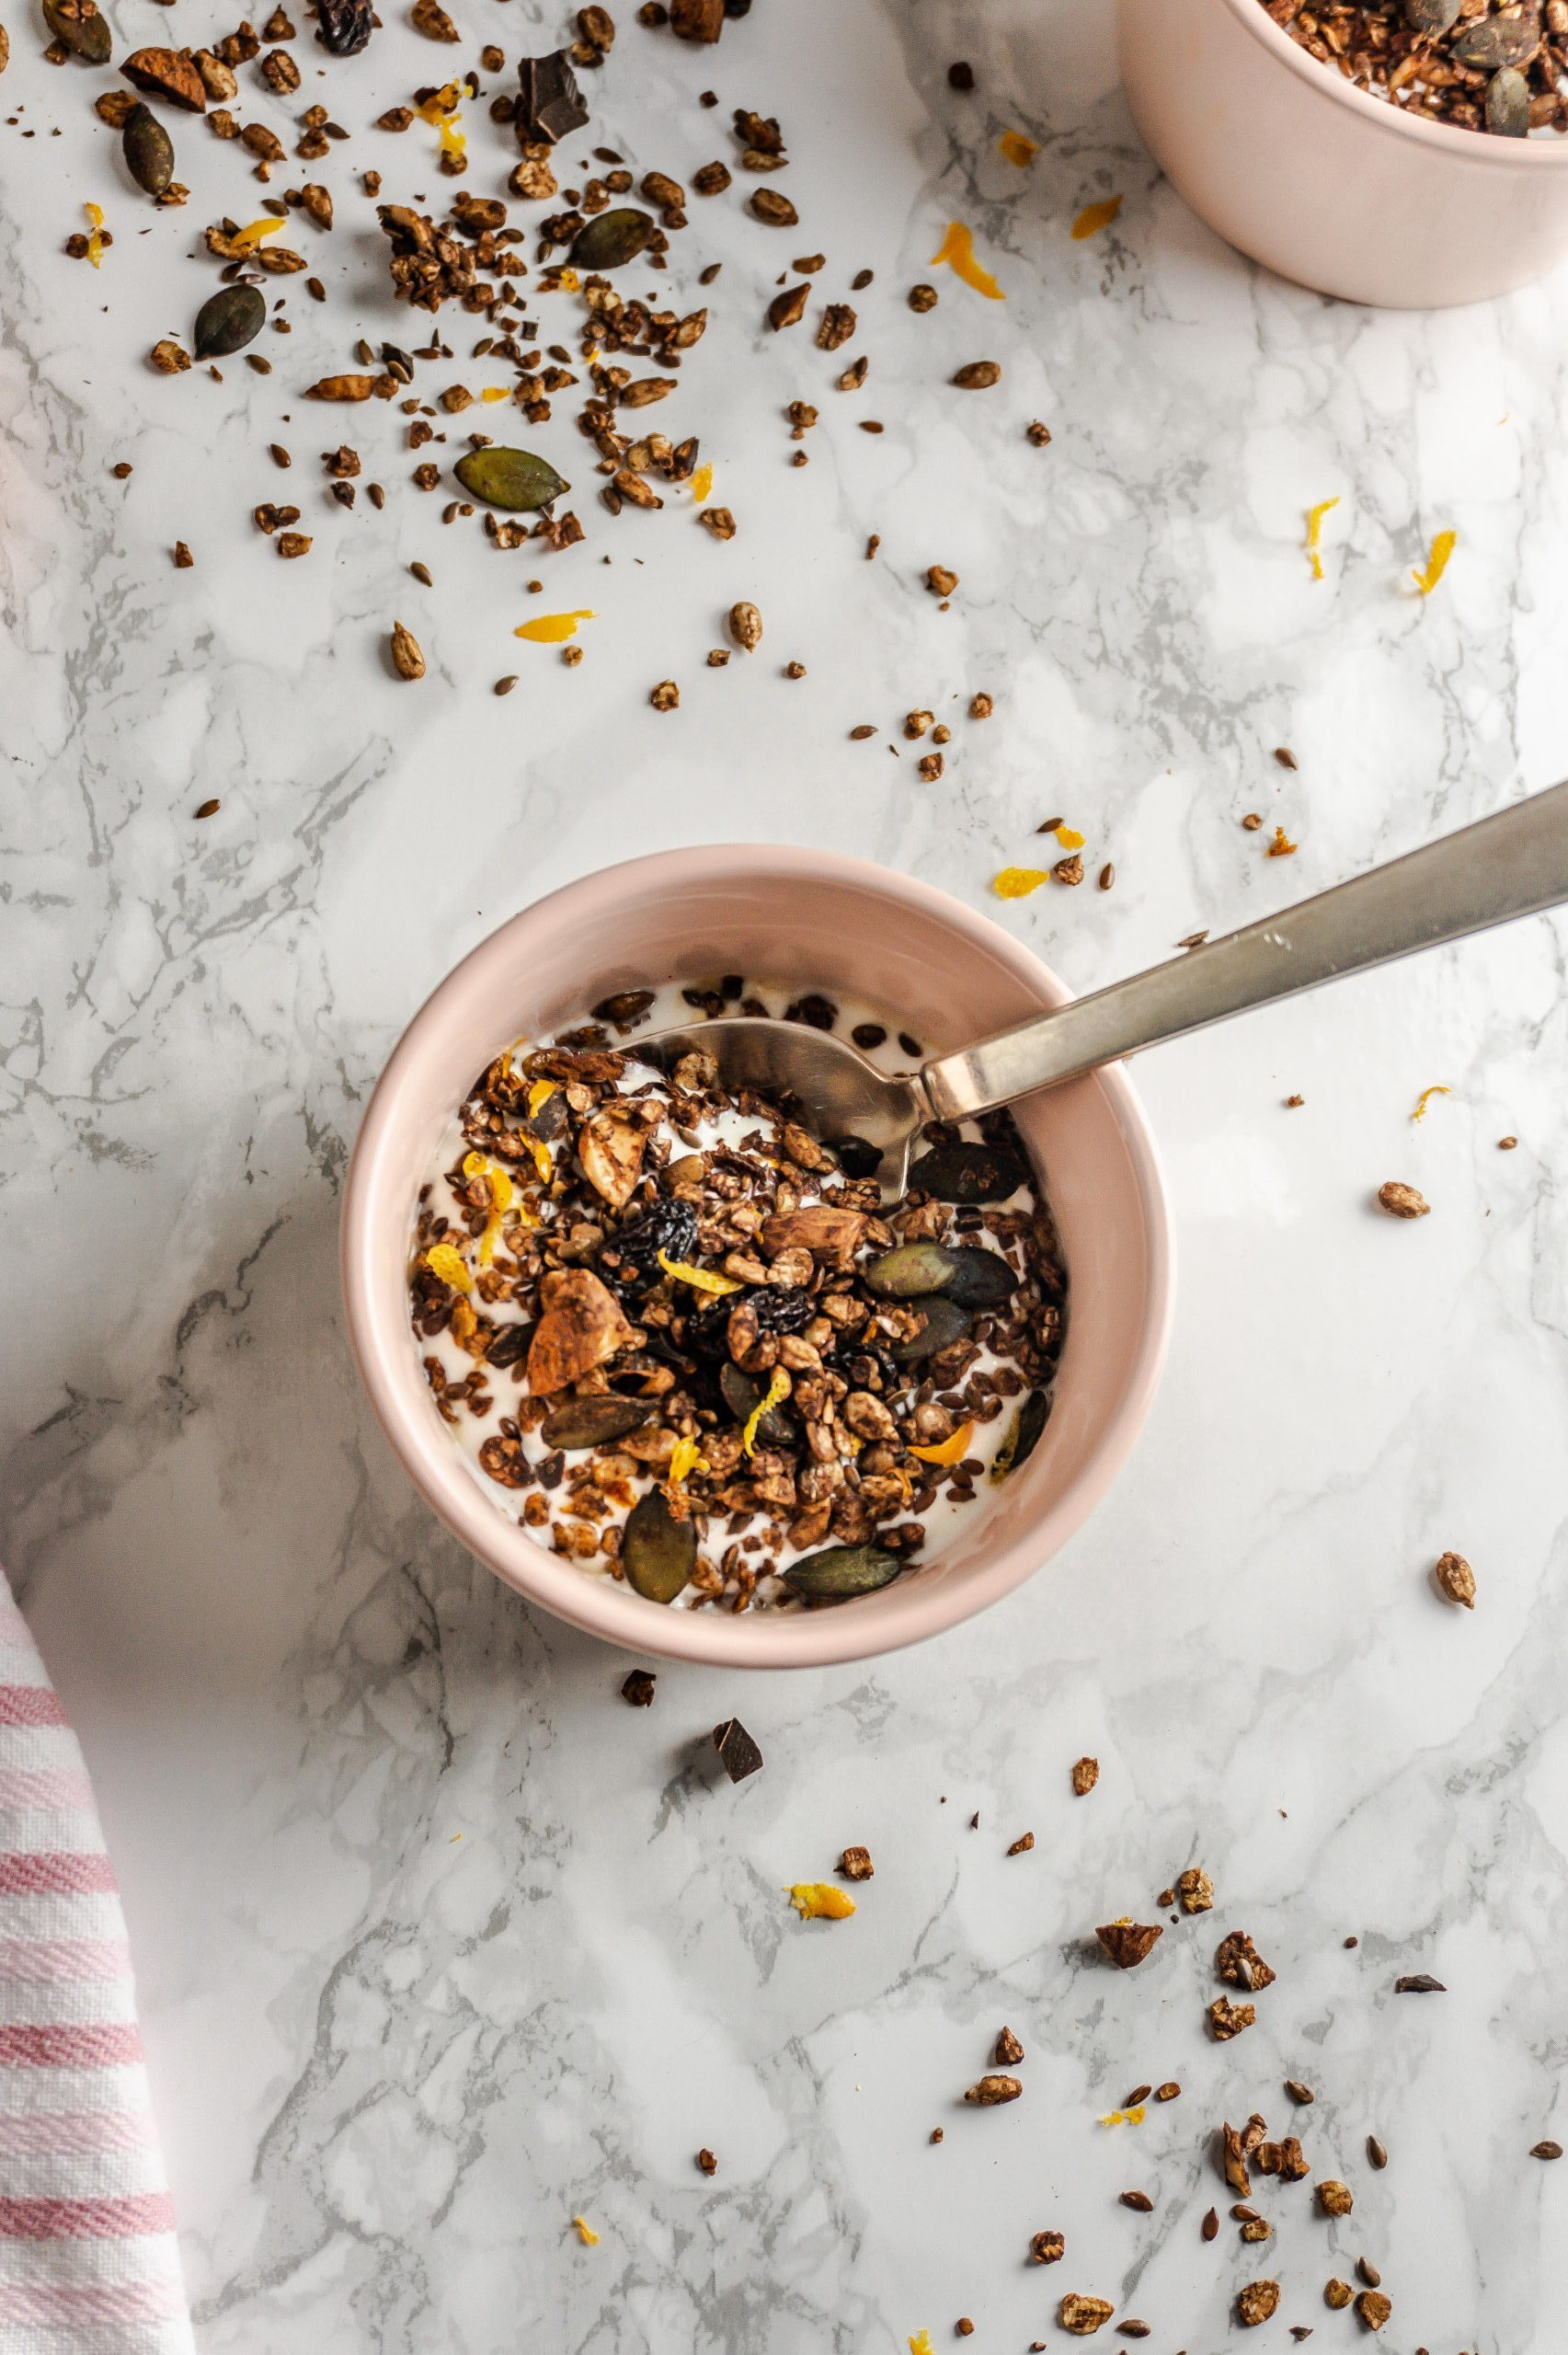 Chocolate Orange Granola in a small bowl with a spoon stuck in and some granola strewn around